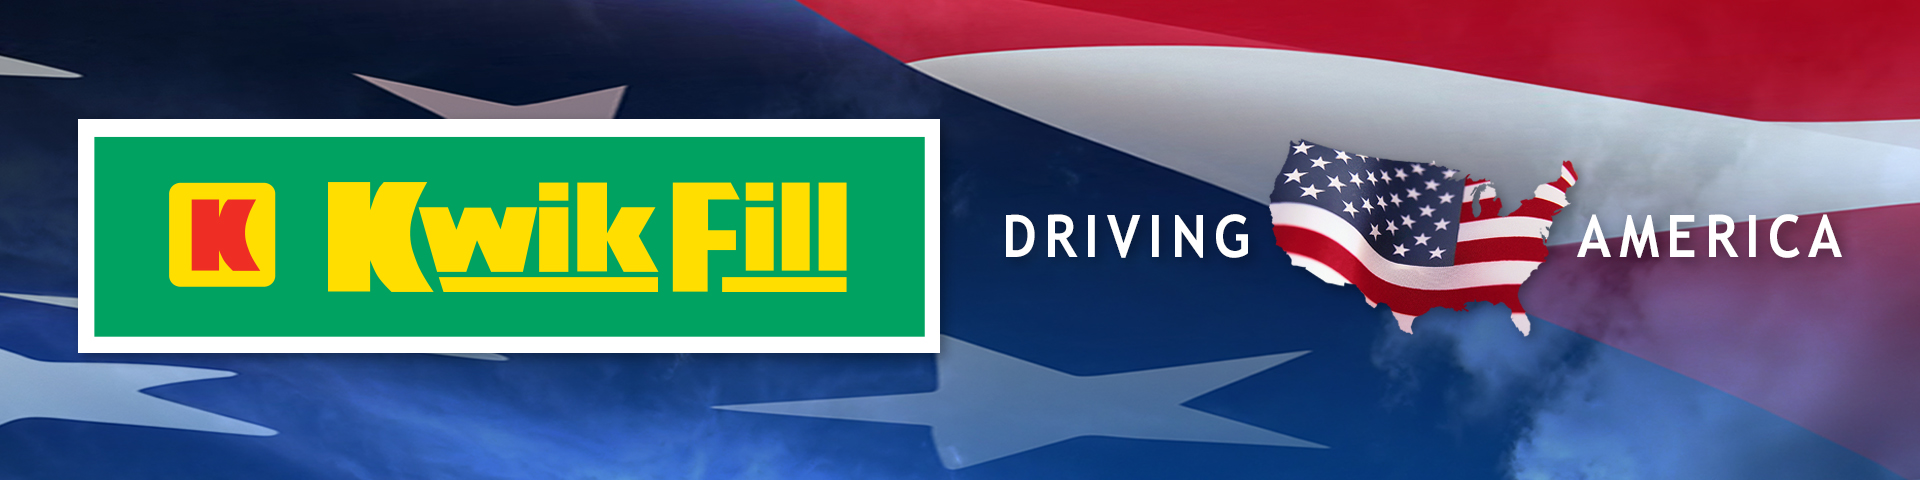 The logo for driving America